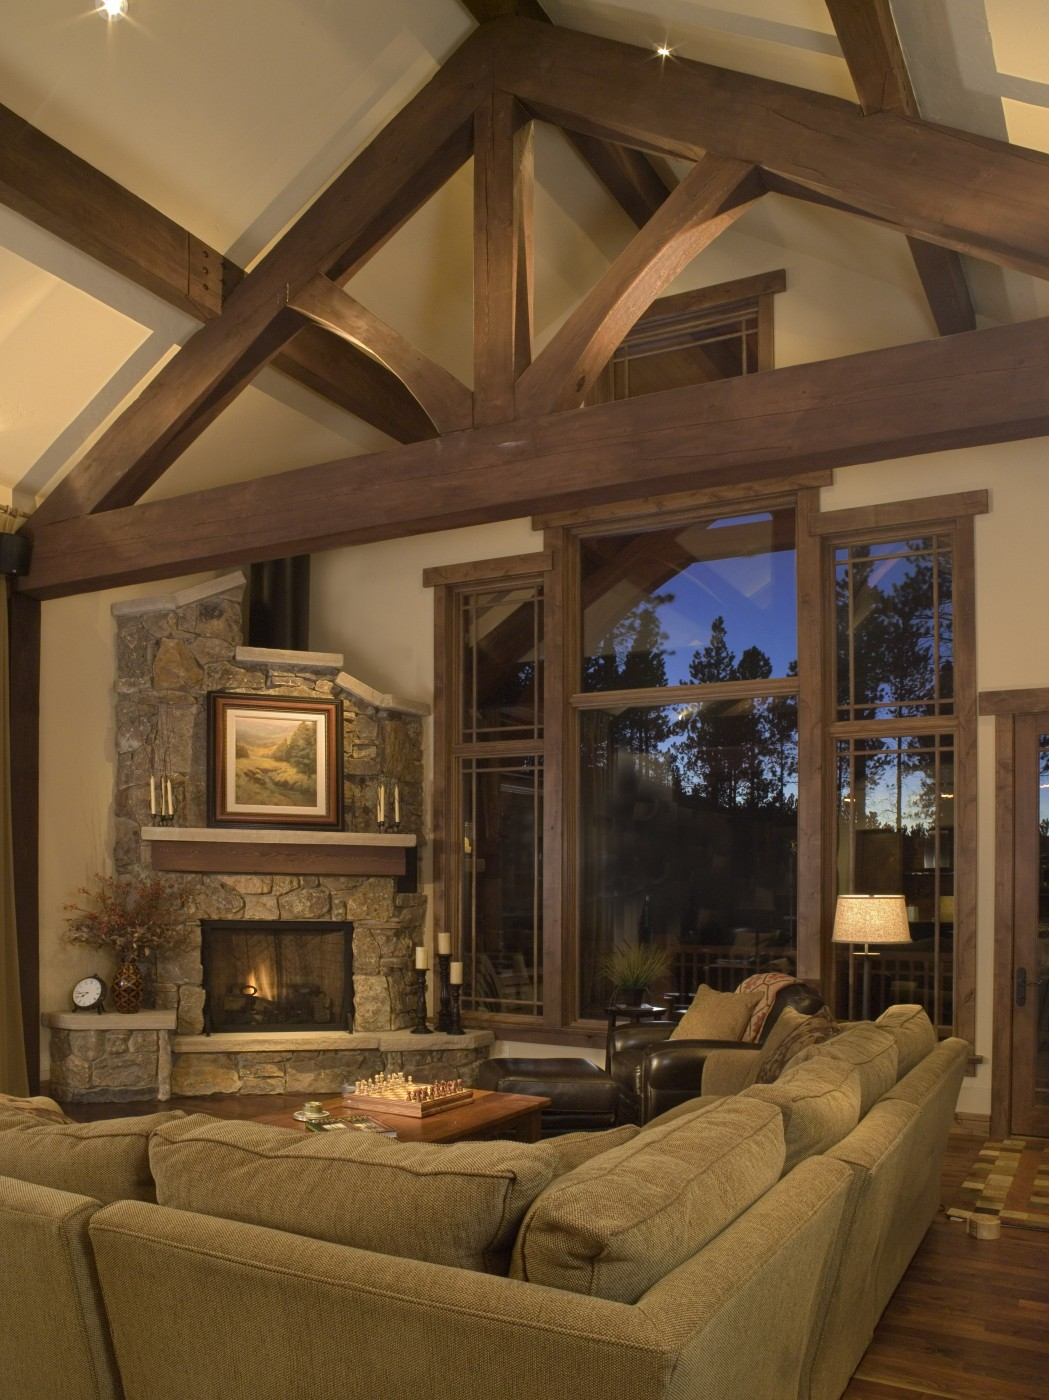 Craftsman cottage two allen guerra architects - Living room with fireplace ...